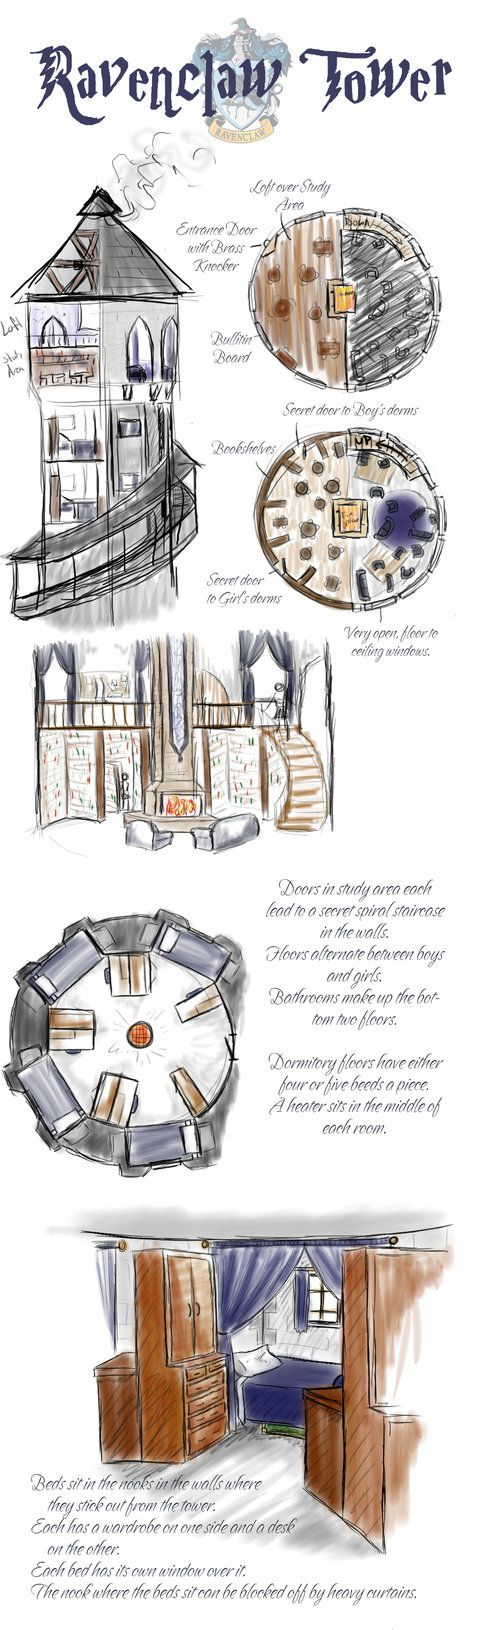 Ravenclaw Tower by *Whisperwings on deviantART: